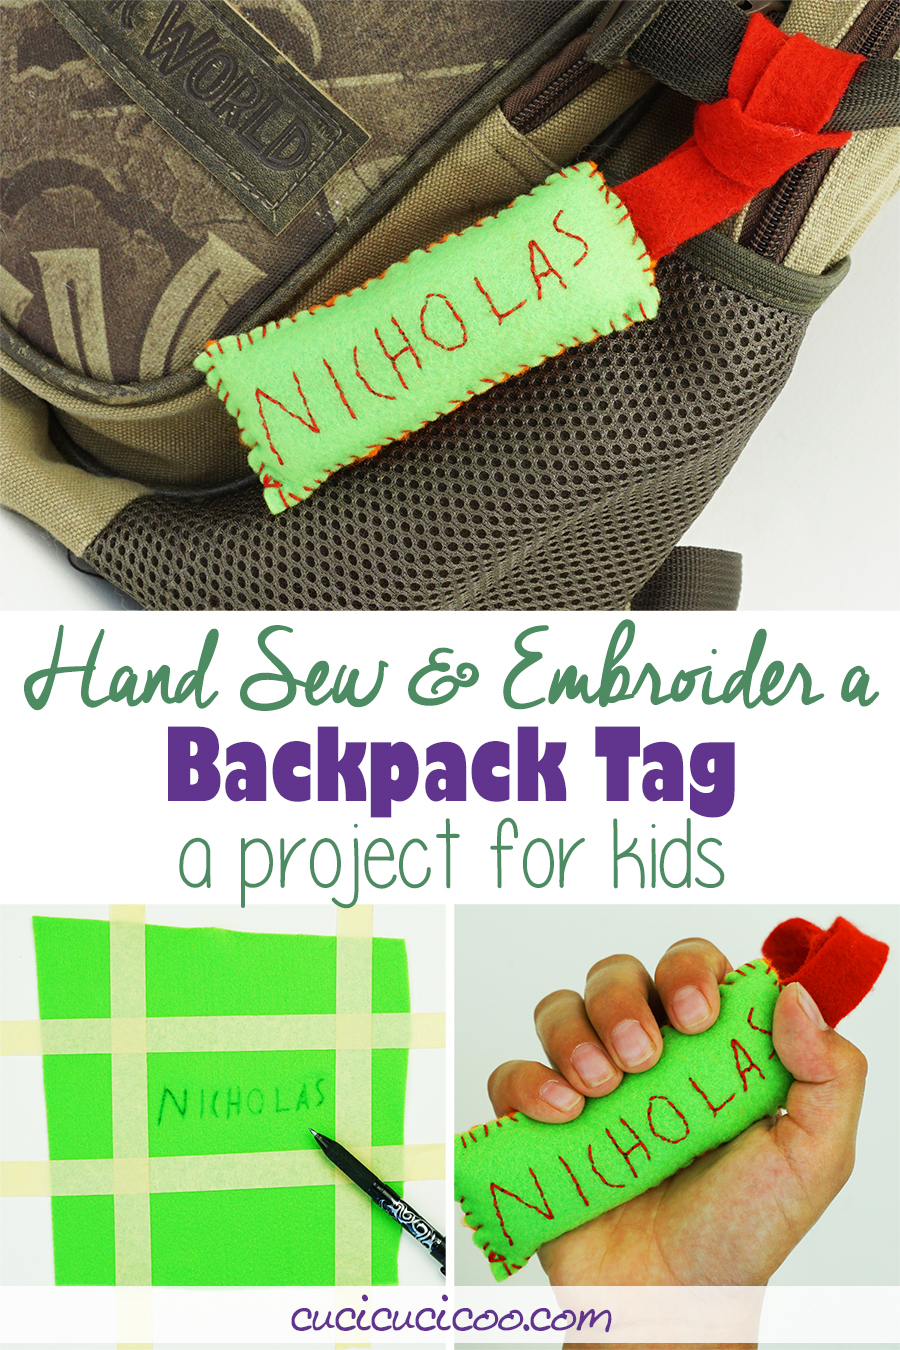 Learn 2 simple hand stitches with this kid embroidery project! Your child can sew a backpack tag with his embroidered name. A great way to customize a school book bag! #kidsewing #kidssew